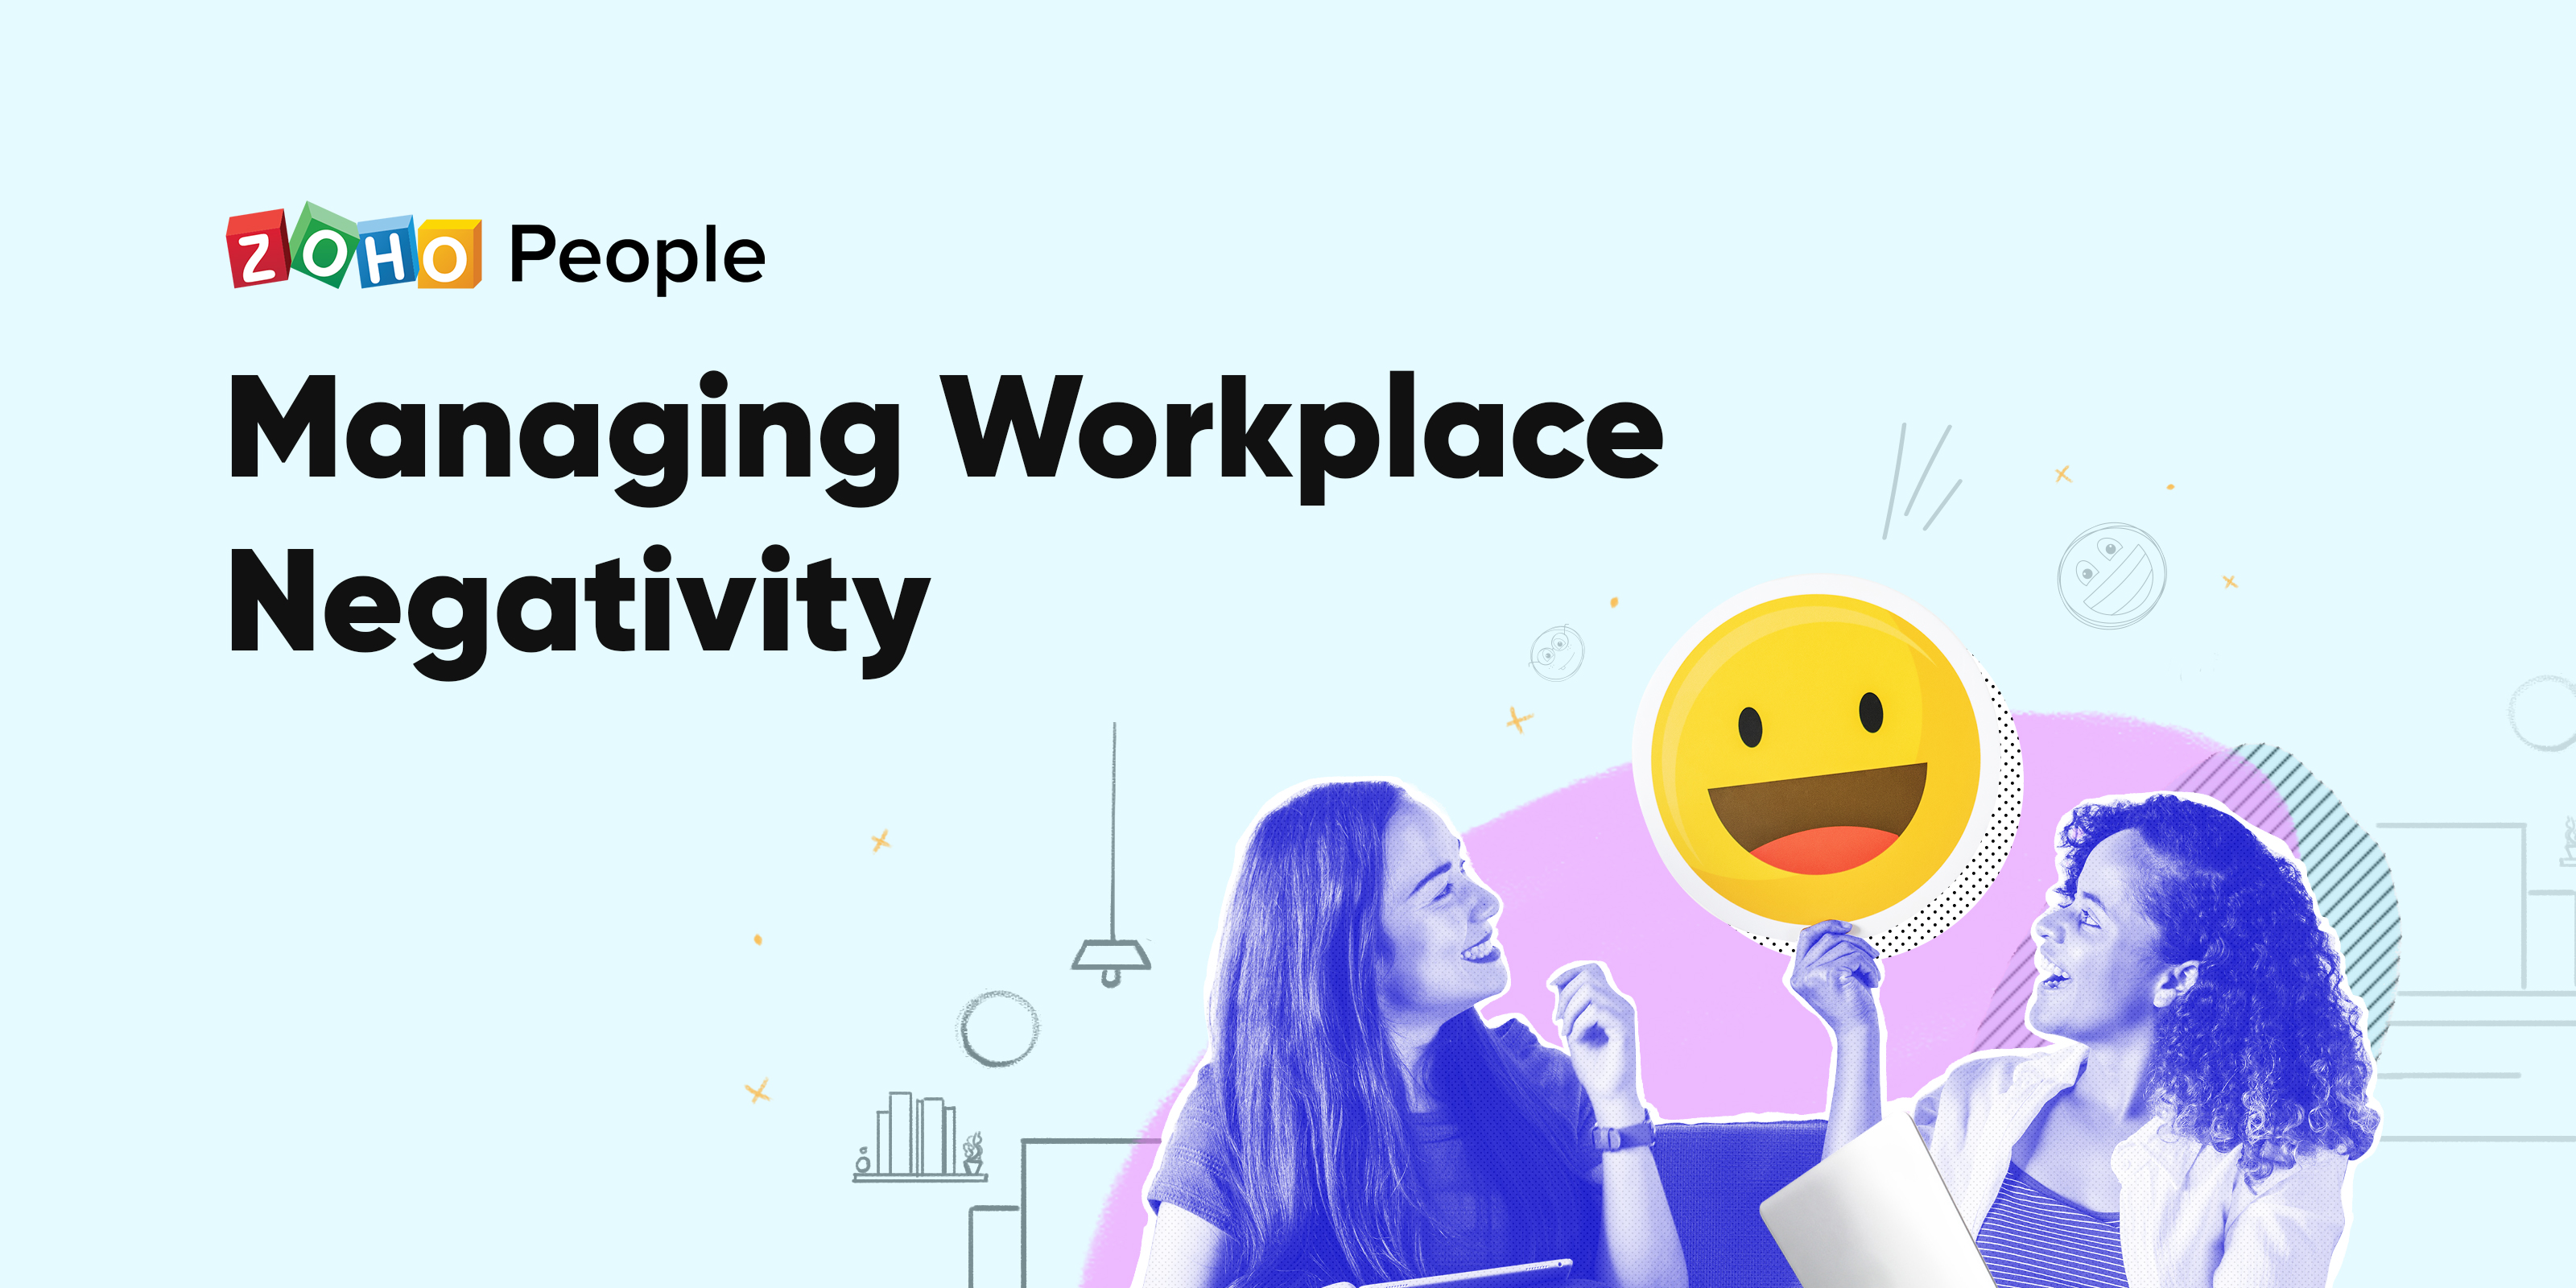 10 ways to minimize workplace negativity